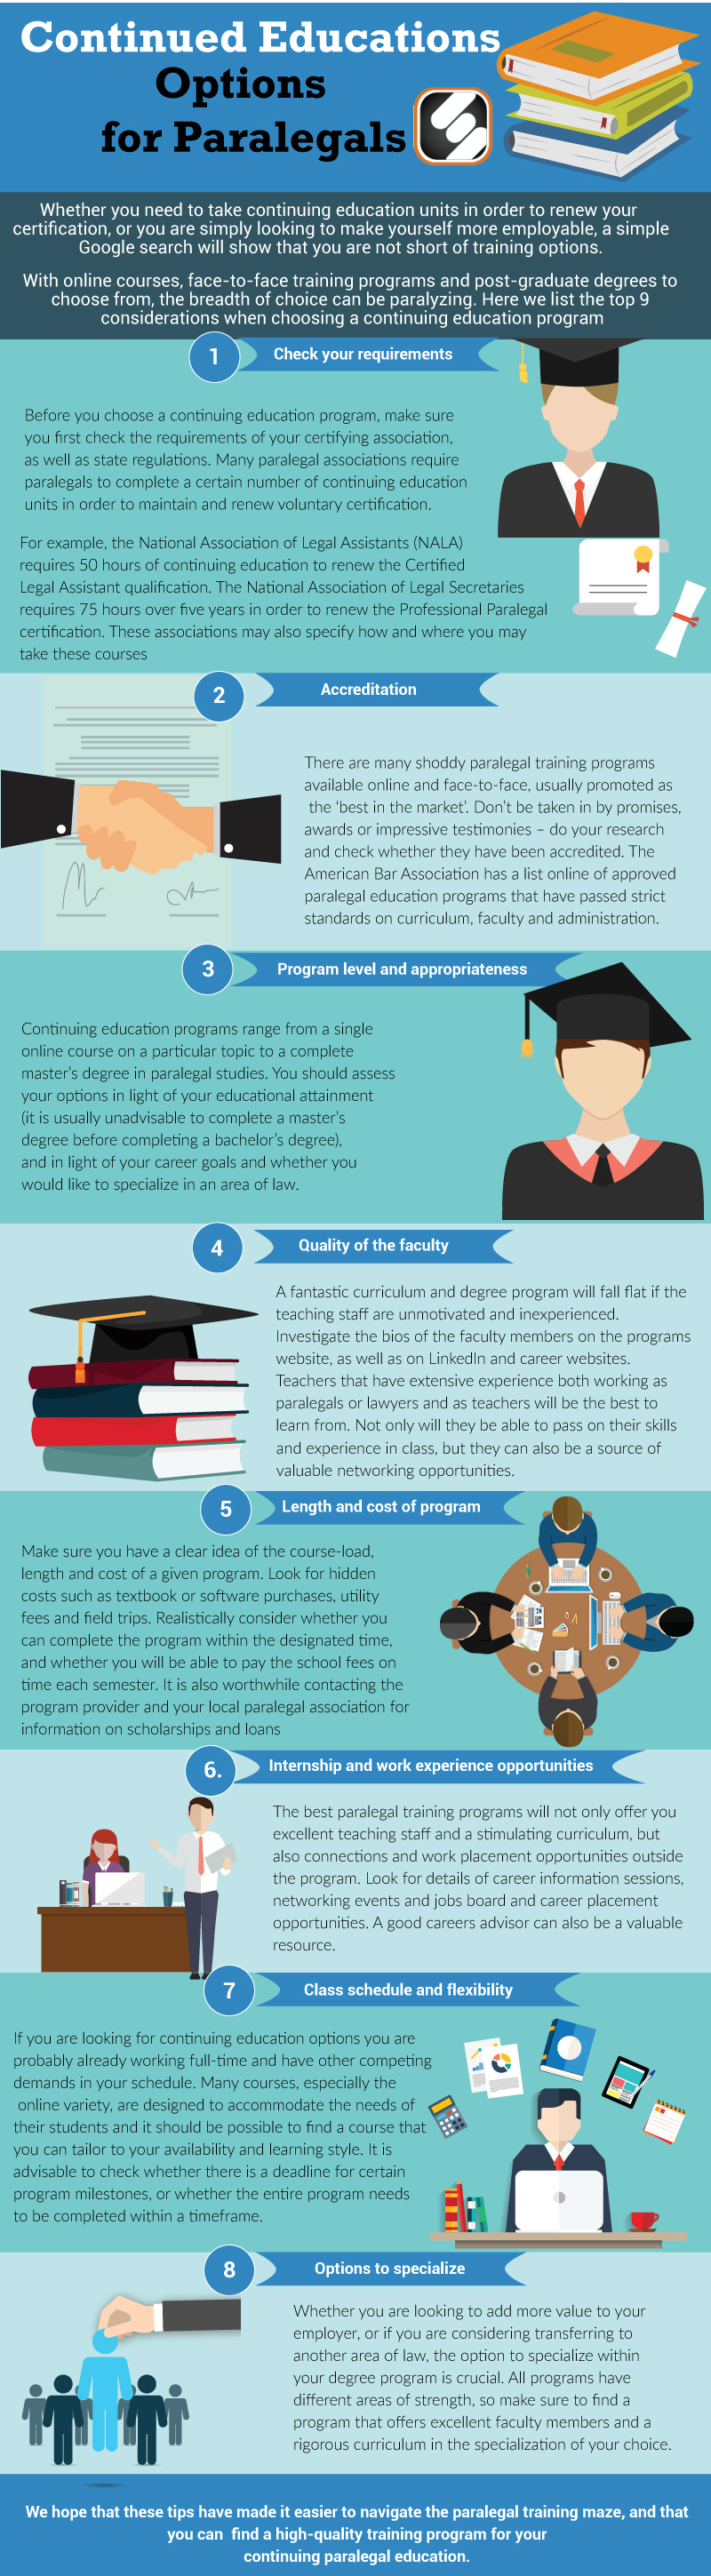 Top Considerations For Paralegals Choosing A Continued Education Program